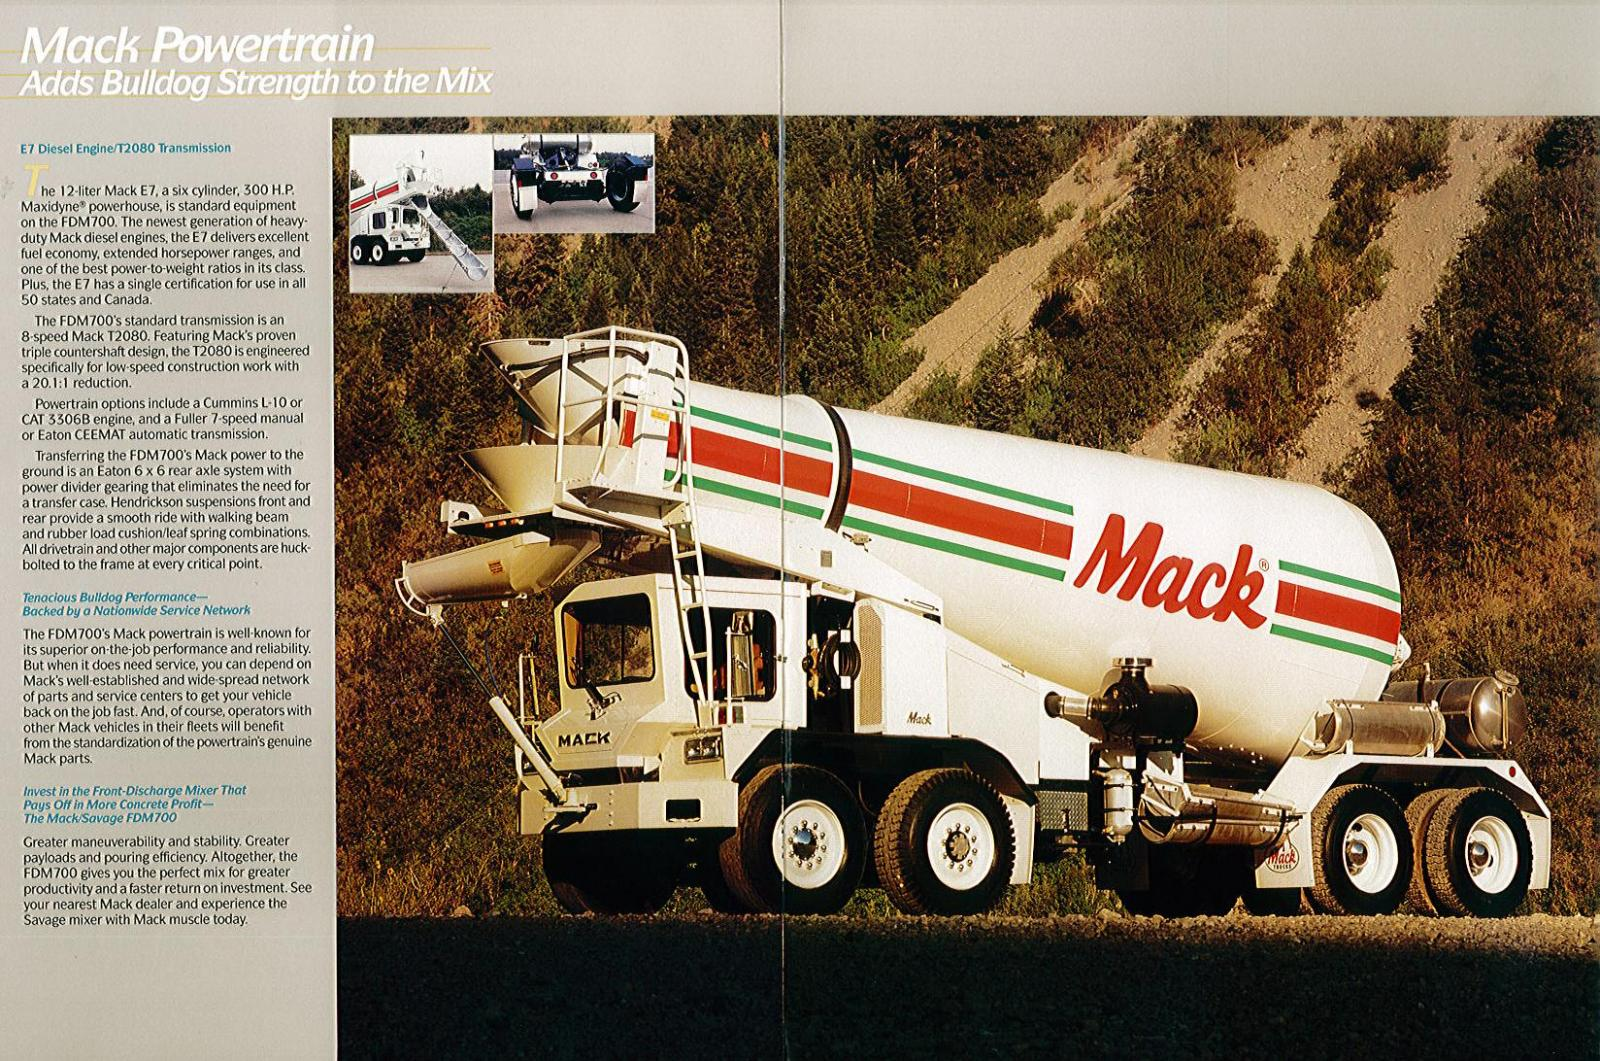 The Mack/Savage FDM700 Front Discharge Mixer - Modern Mack